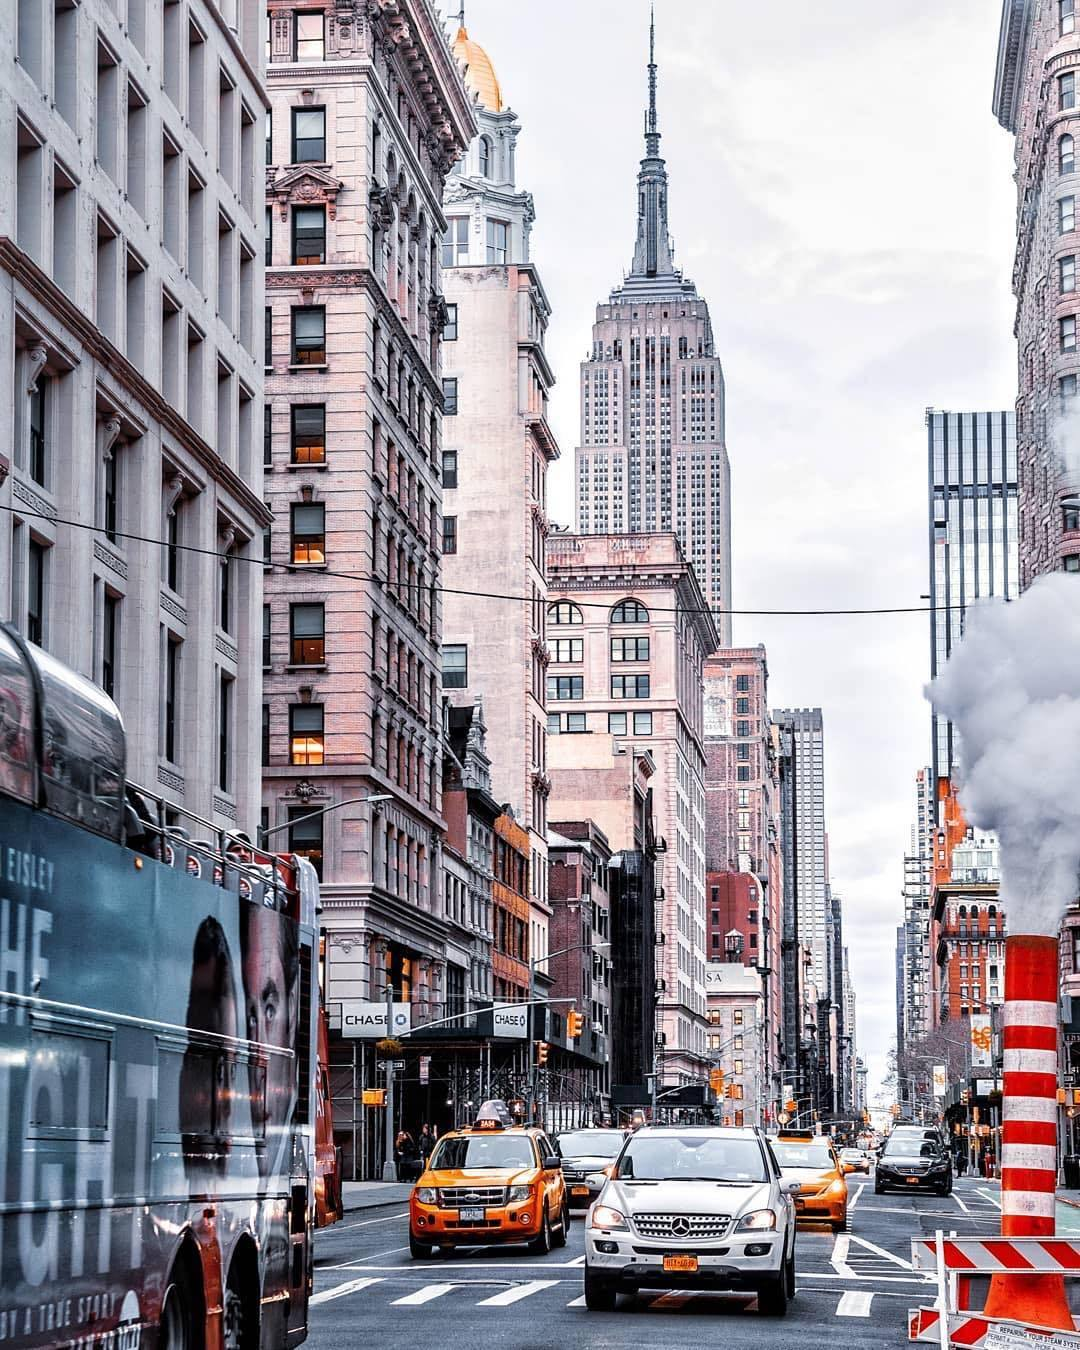 Nyc New York: Viewing NYC On Instagram, January 29th, 2019